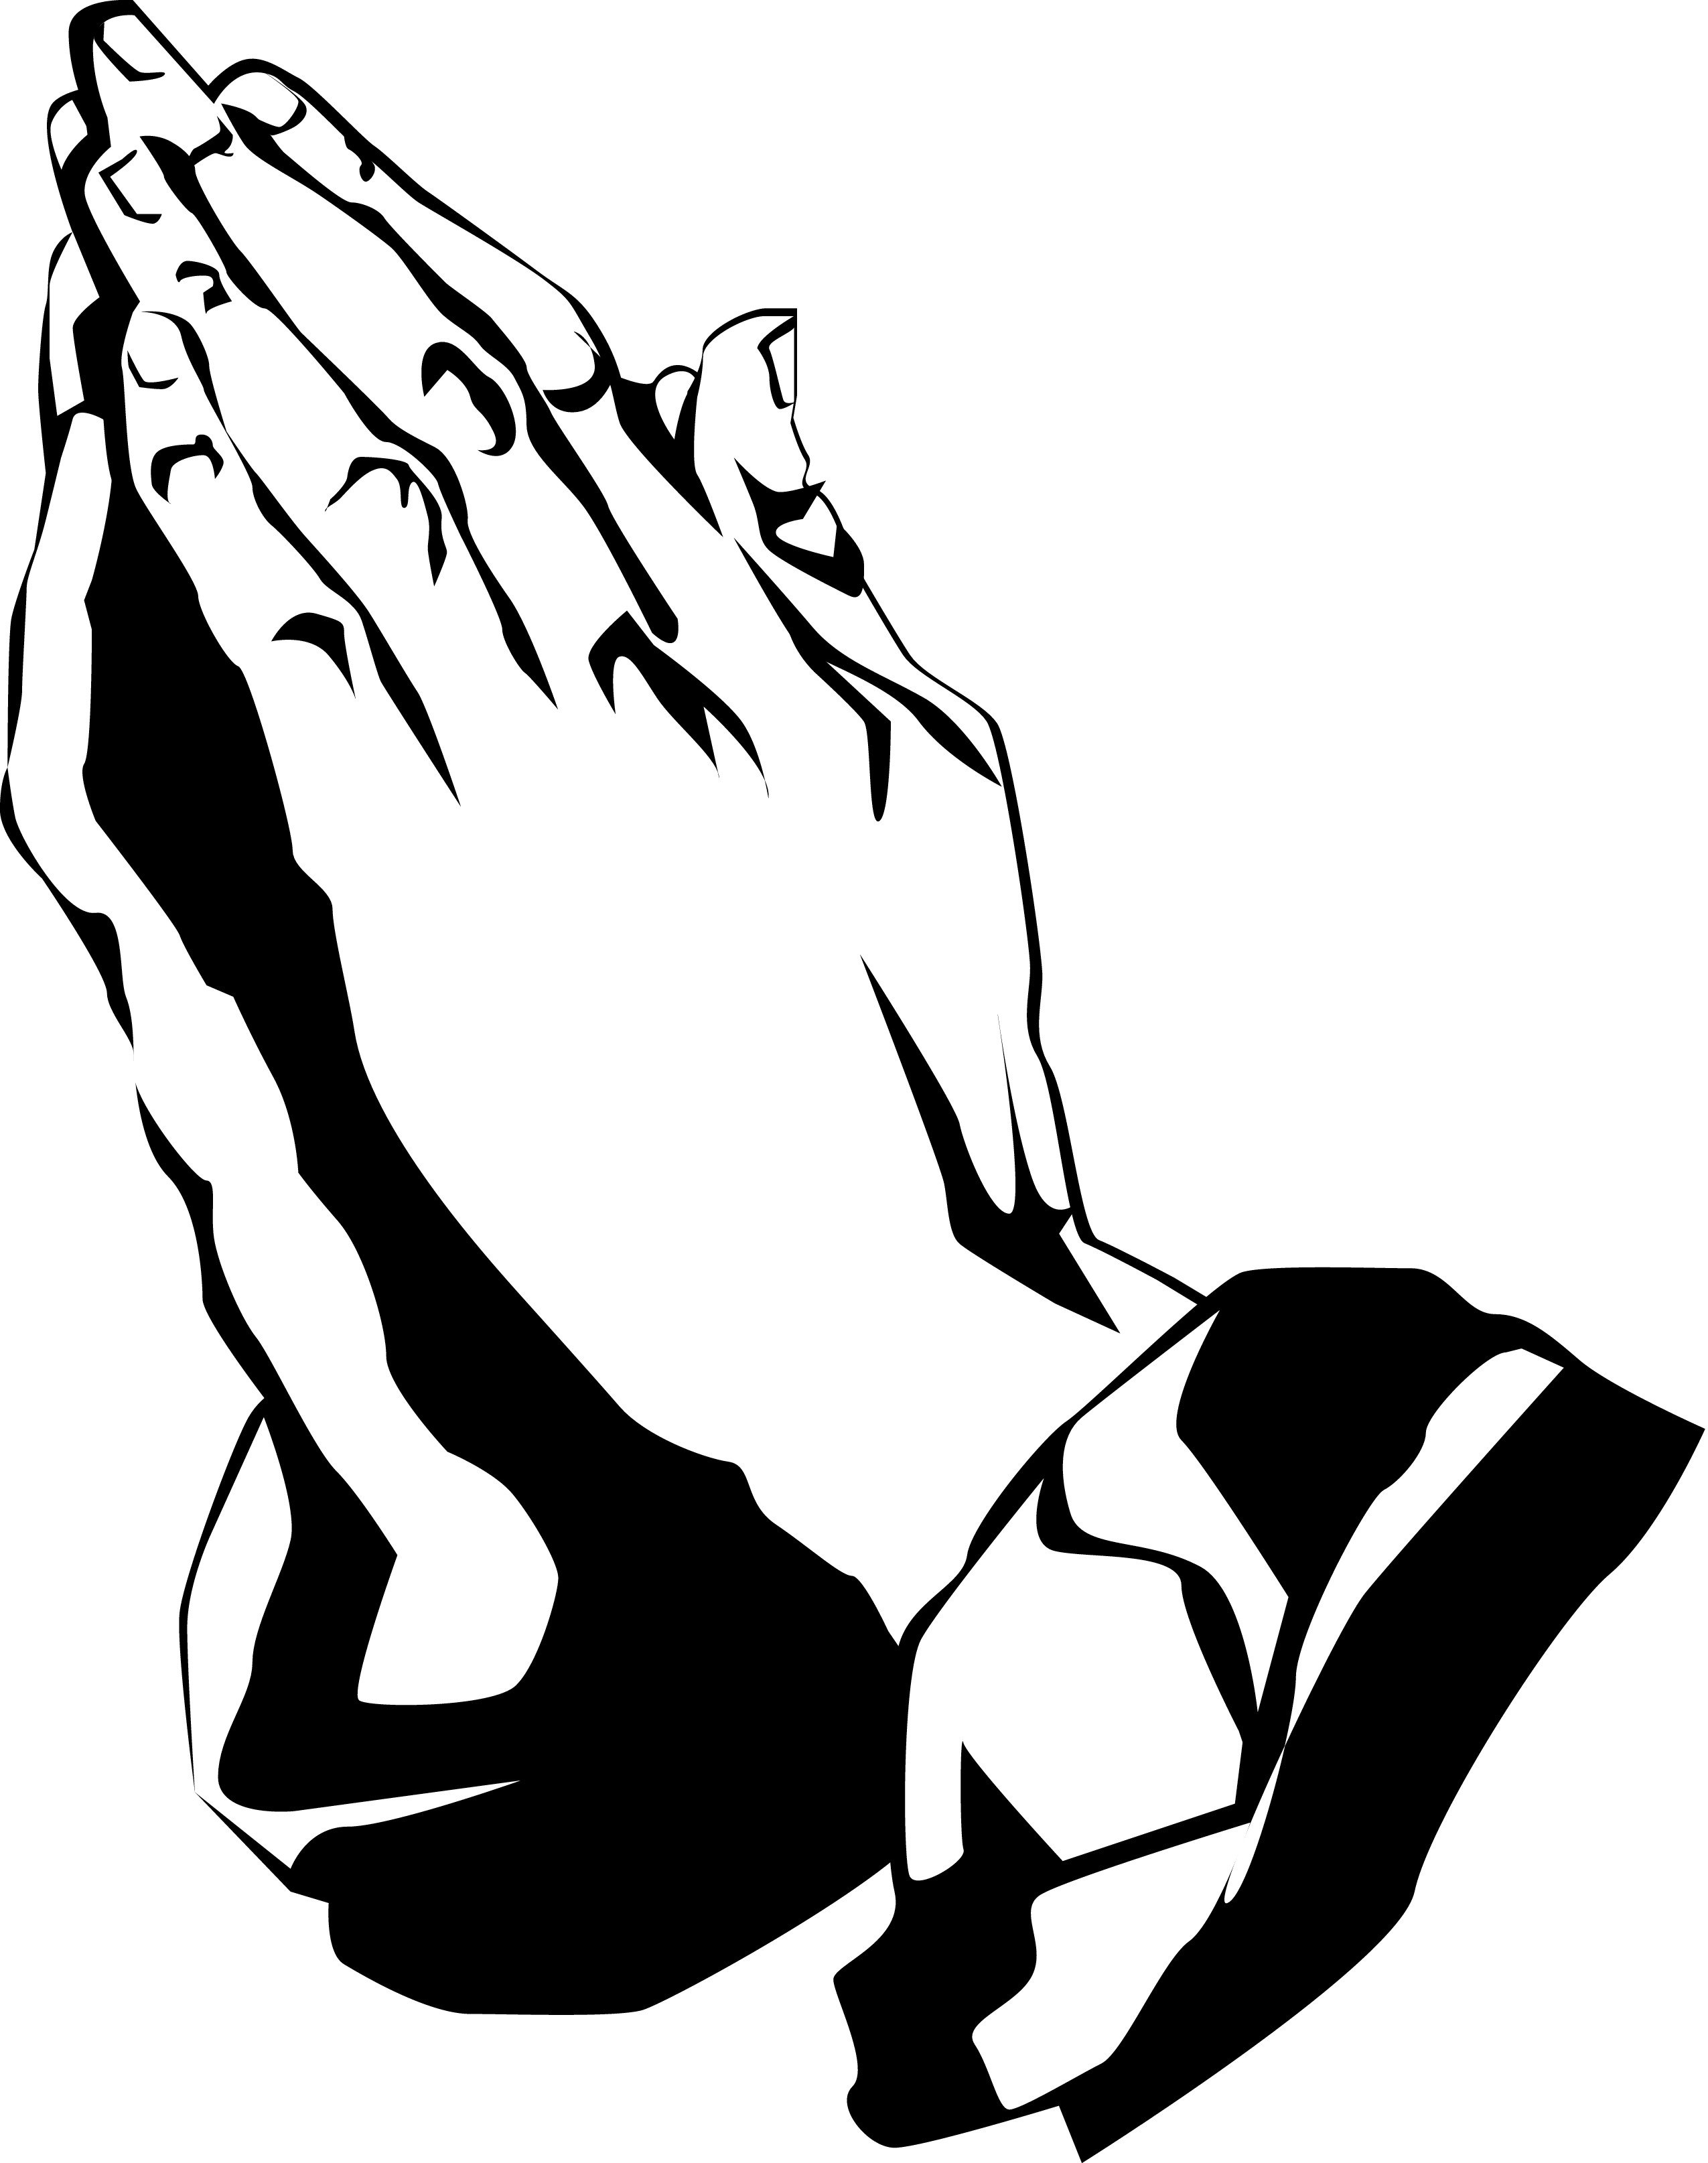 Black praying hands clipart 1 » Clipart Station.